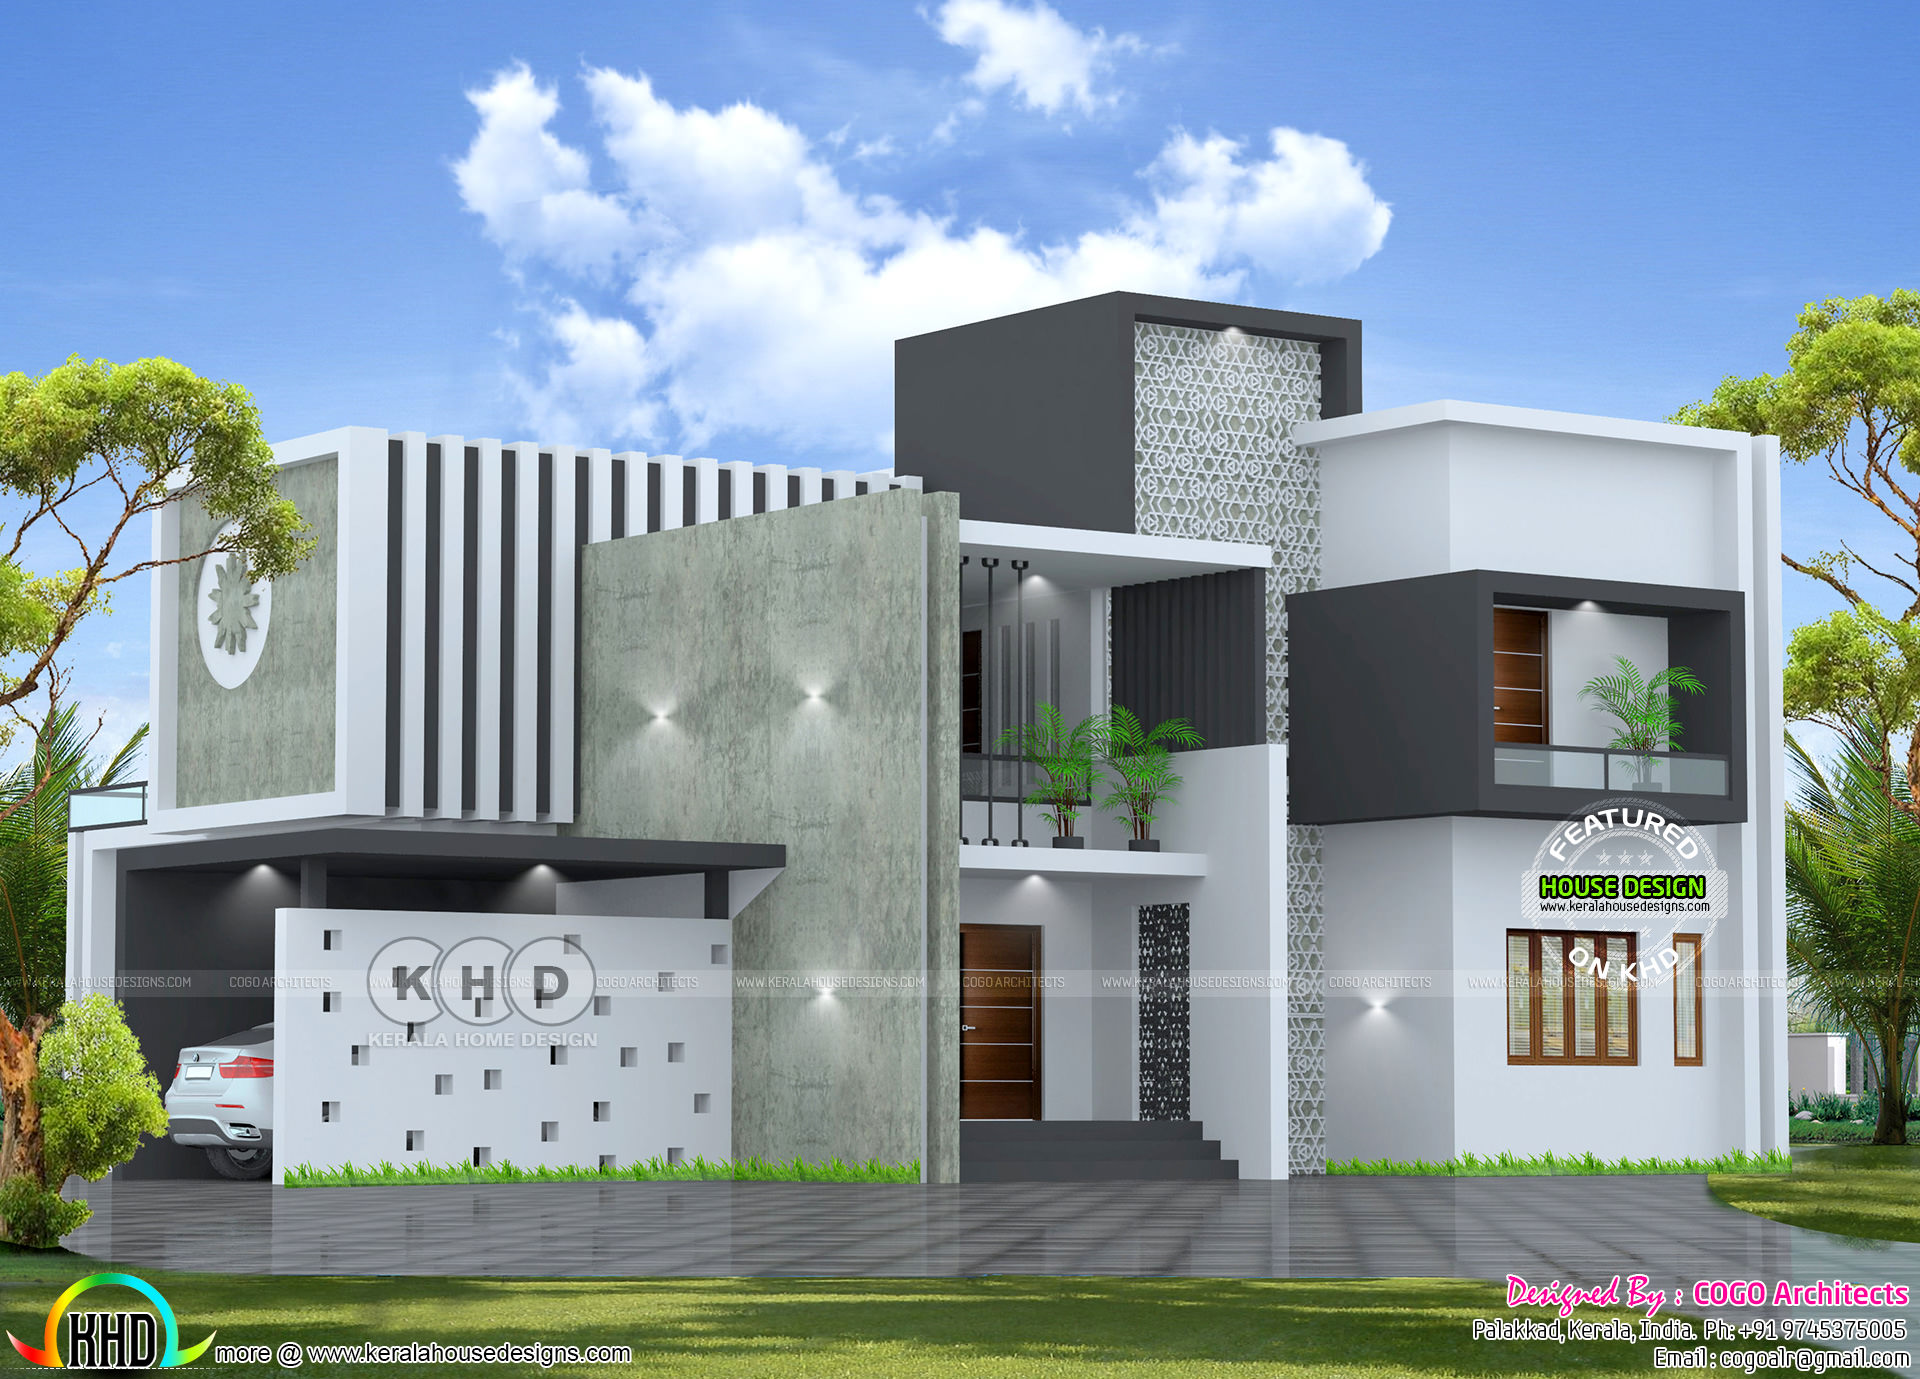 Royal contemporary house architecture - Kerala home design and floor